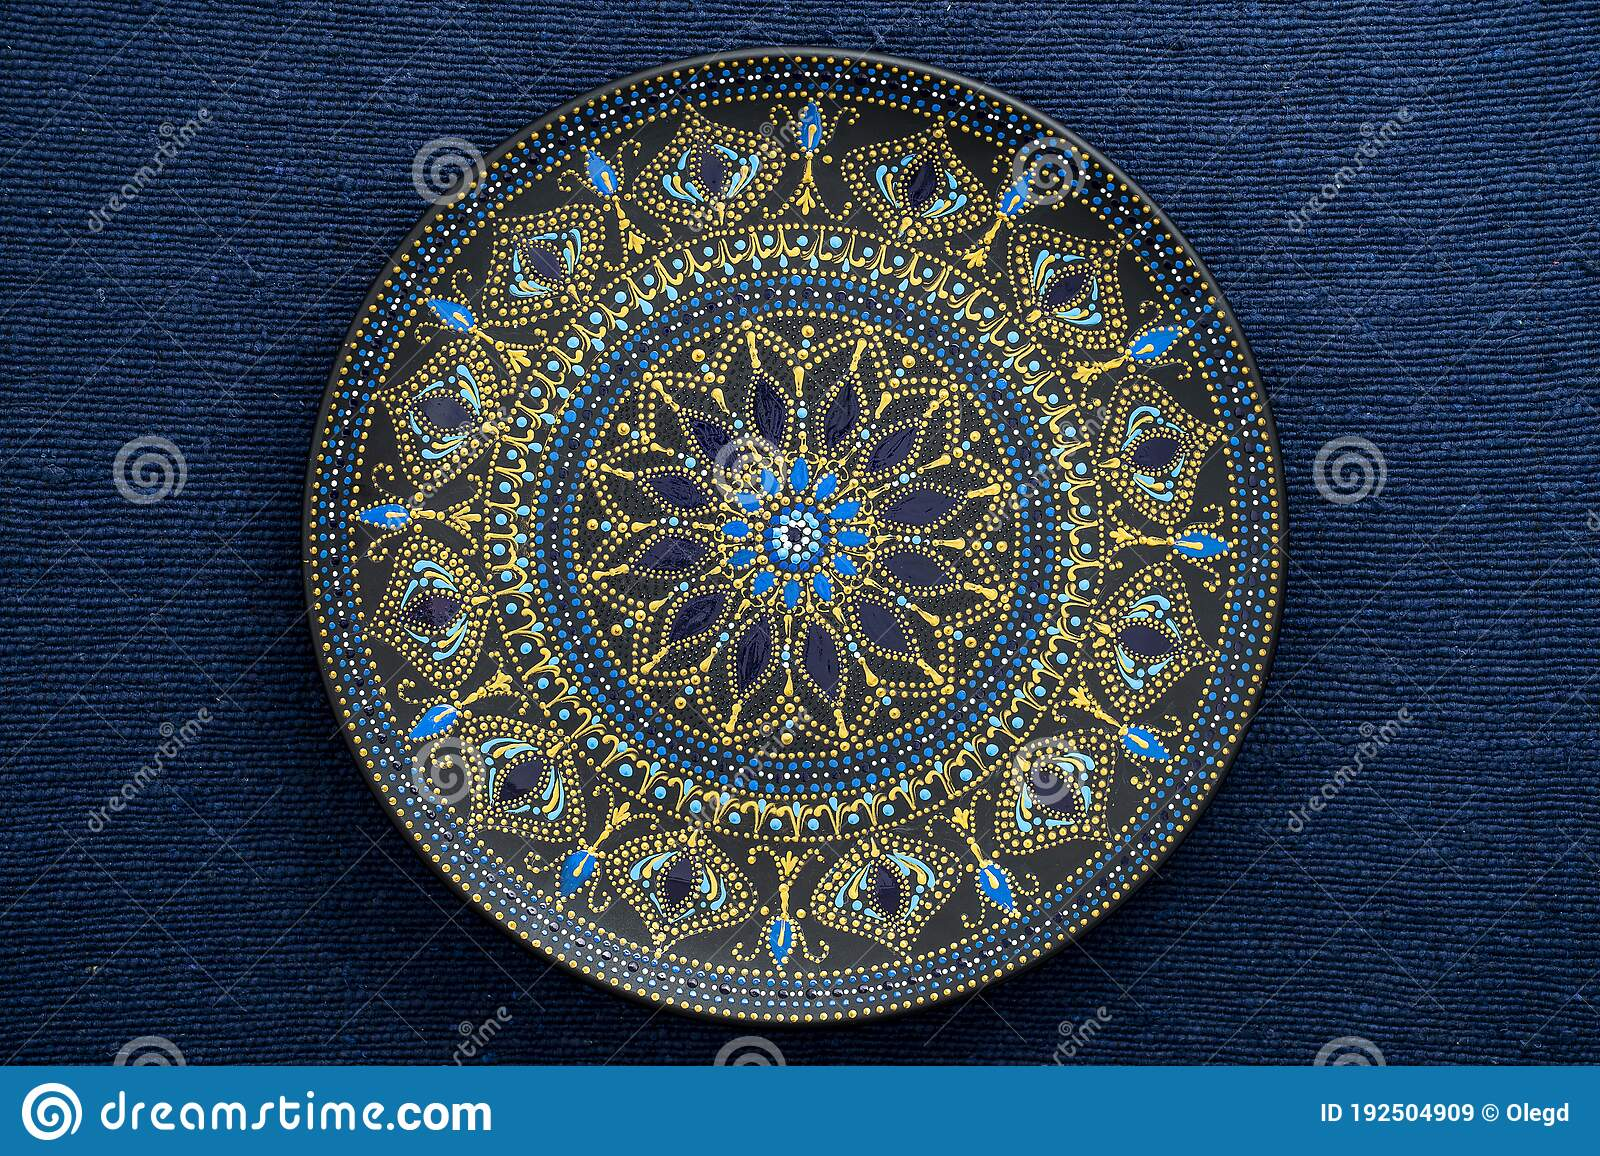 Decorative Ceramic Plate With Black Blue And Golden Colors Painted Plate On Background Of Blue Fabric Dot Painting Stock Image Image Of Mandala Dishware 192504909